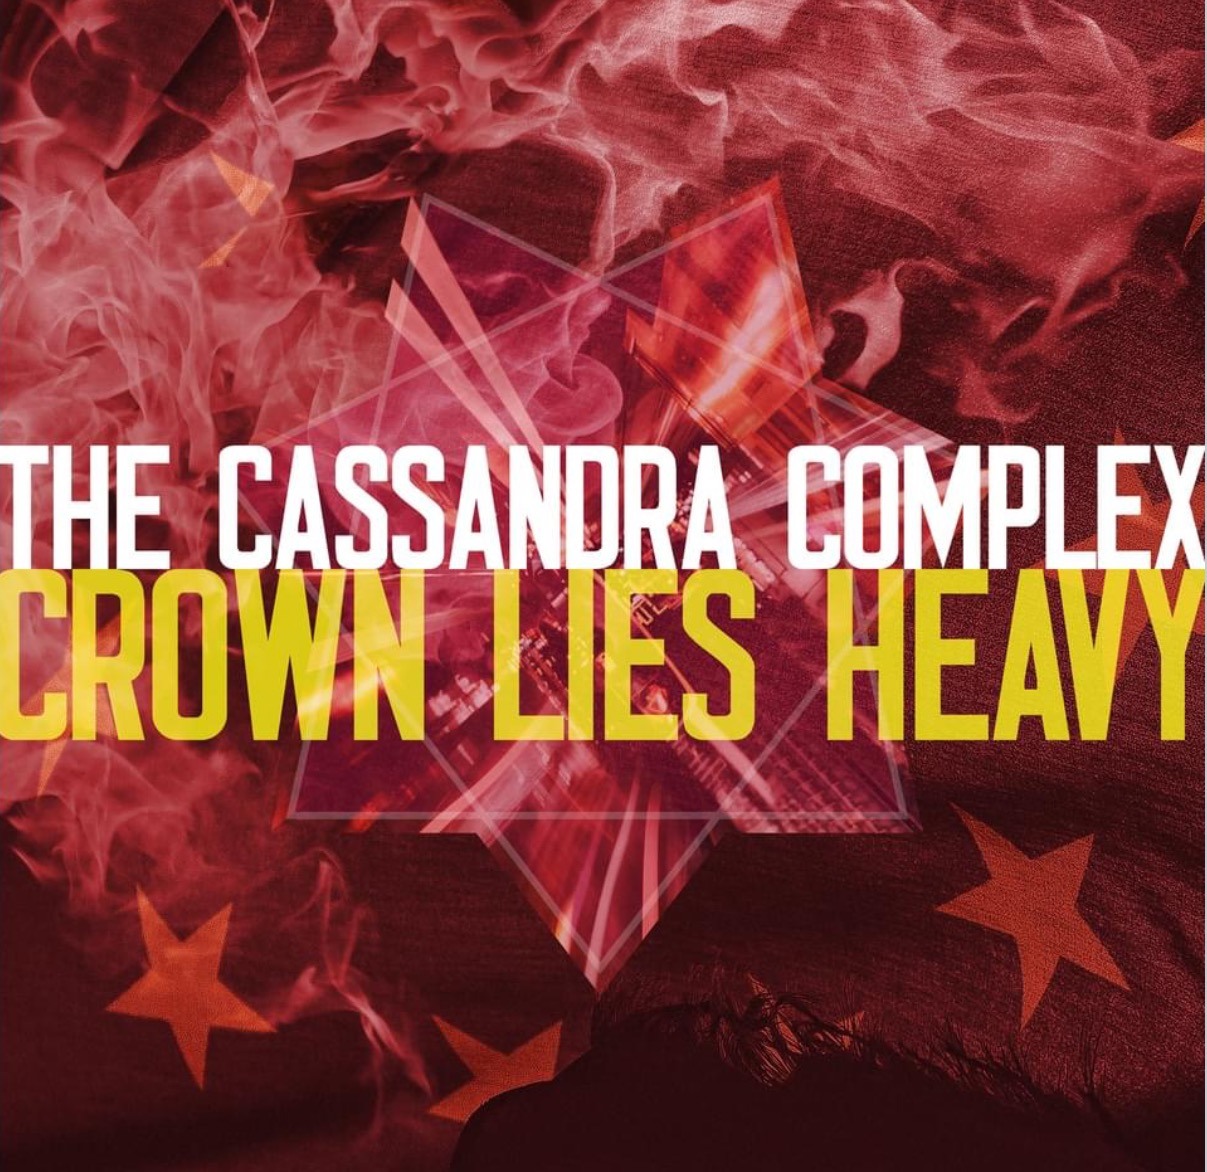 The Cassandra Complex - Crown Lies Heavy